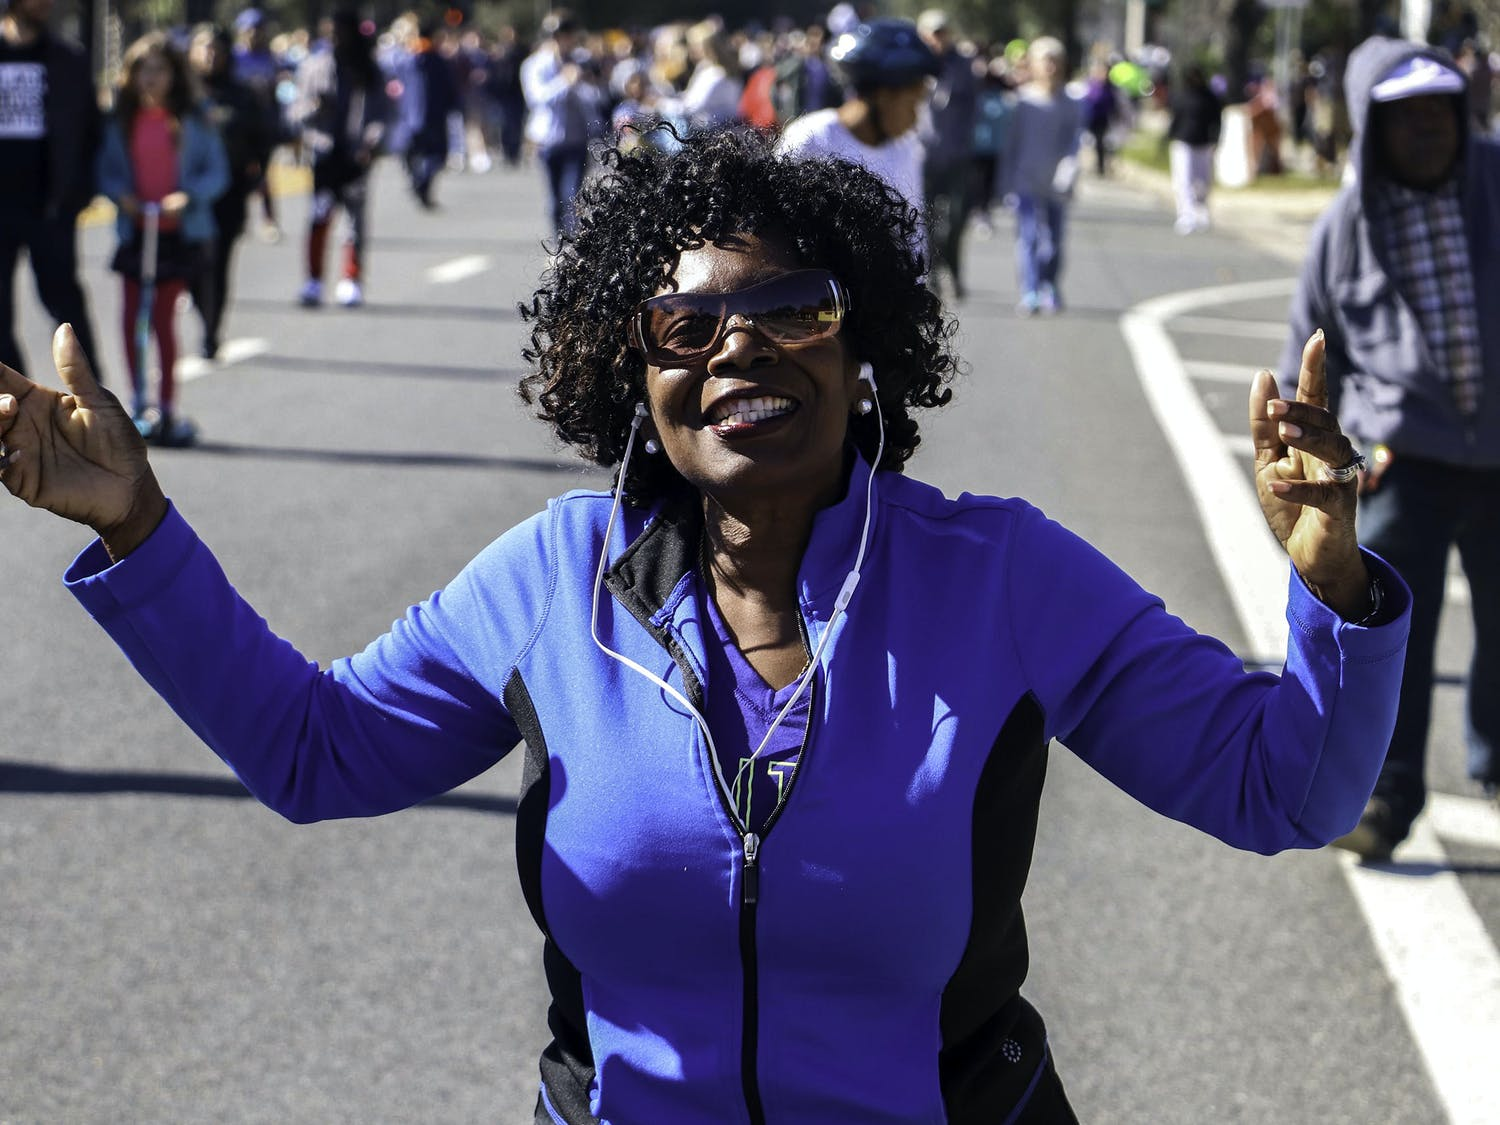 The Annual Commemorative March was one of nine events put on by the Martin Luther King Jr. Commission of Florida Inc. to honor its namesake. The march started at Bo Diddley Plaza at 1 pm on Monday, January 20 and ended in front of the King Center, the location of the last event.